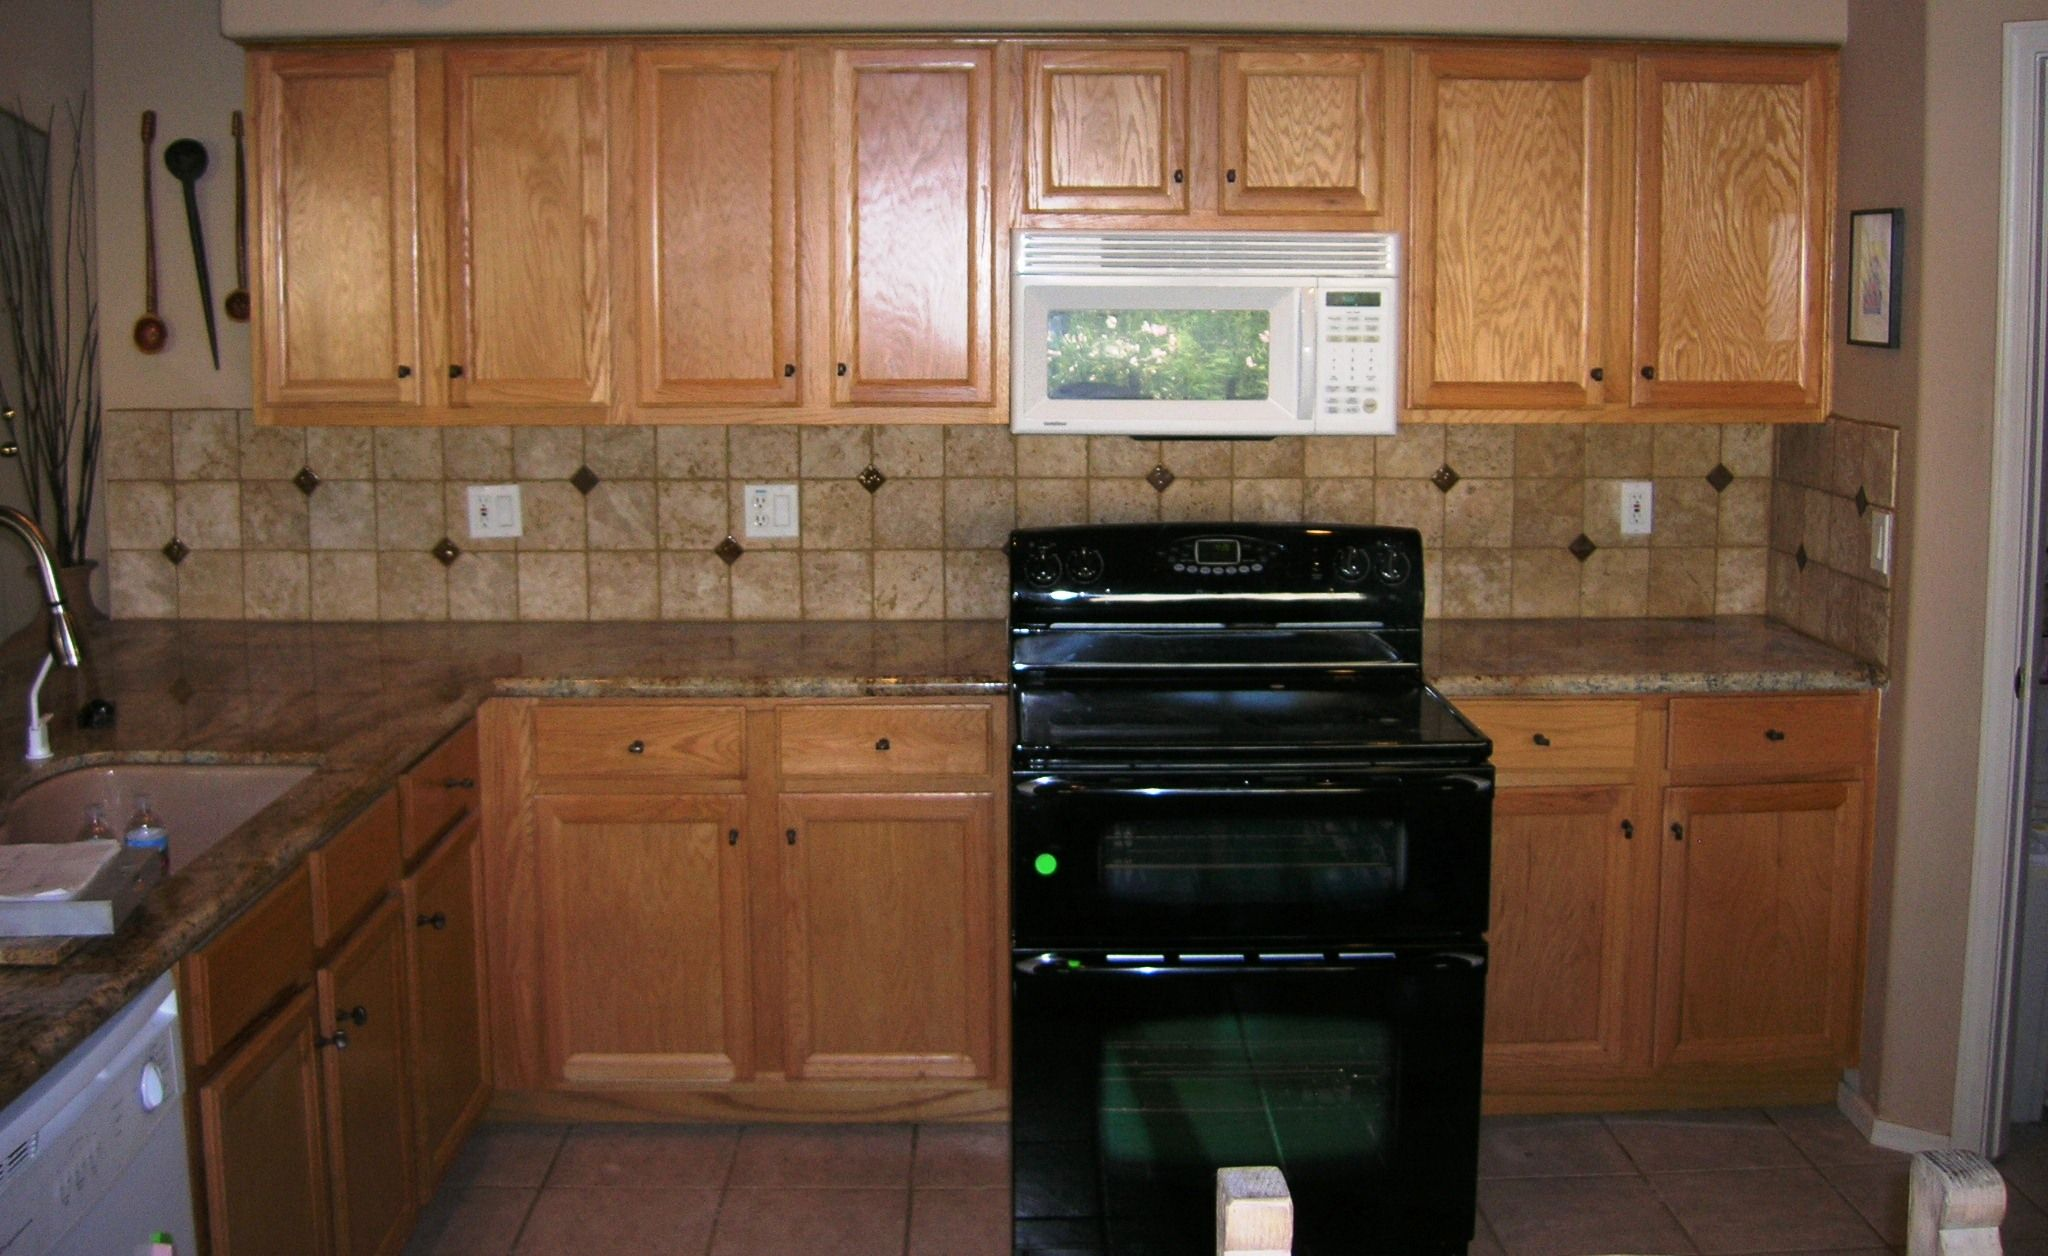 Kitchen Backsplash Pictures. Create A Unique Stainless Steel ...